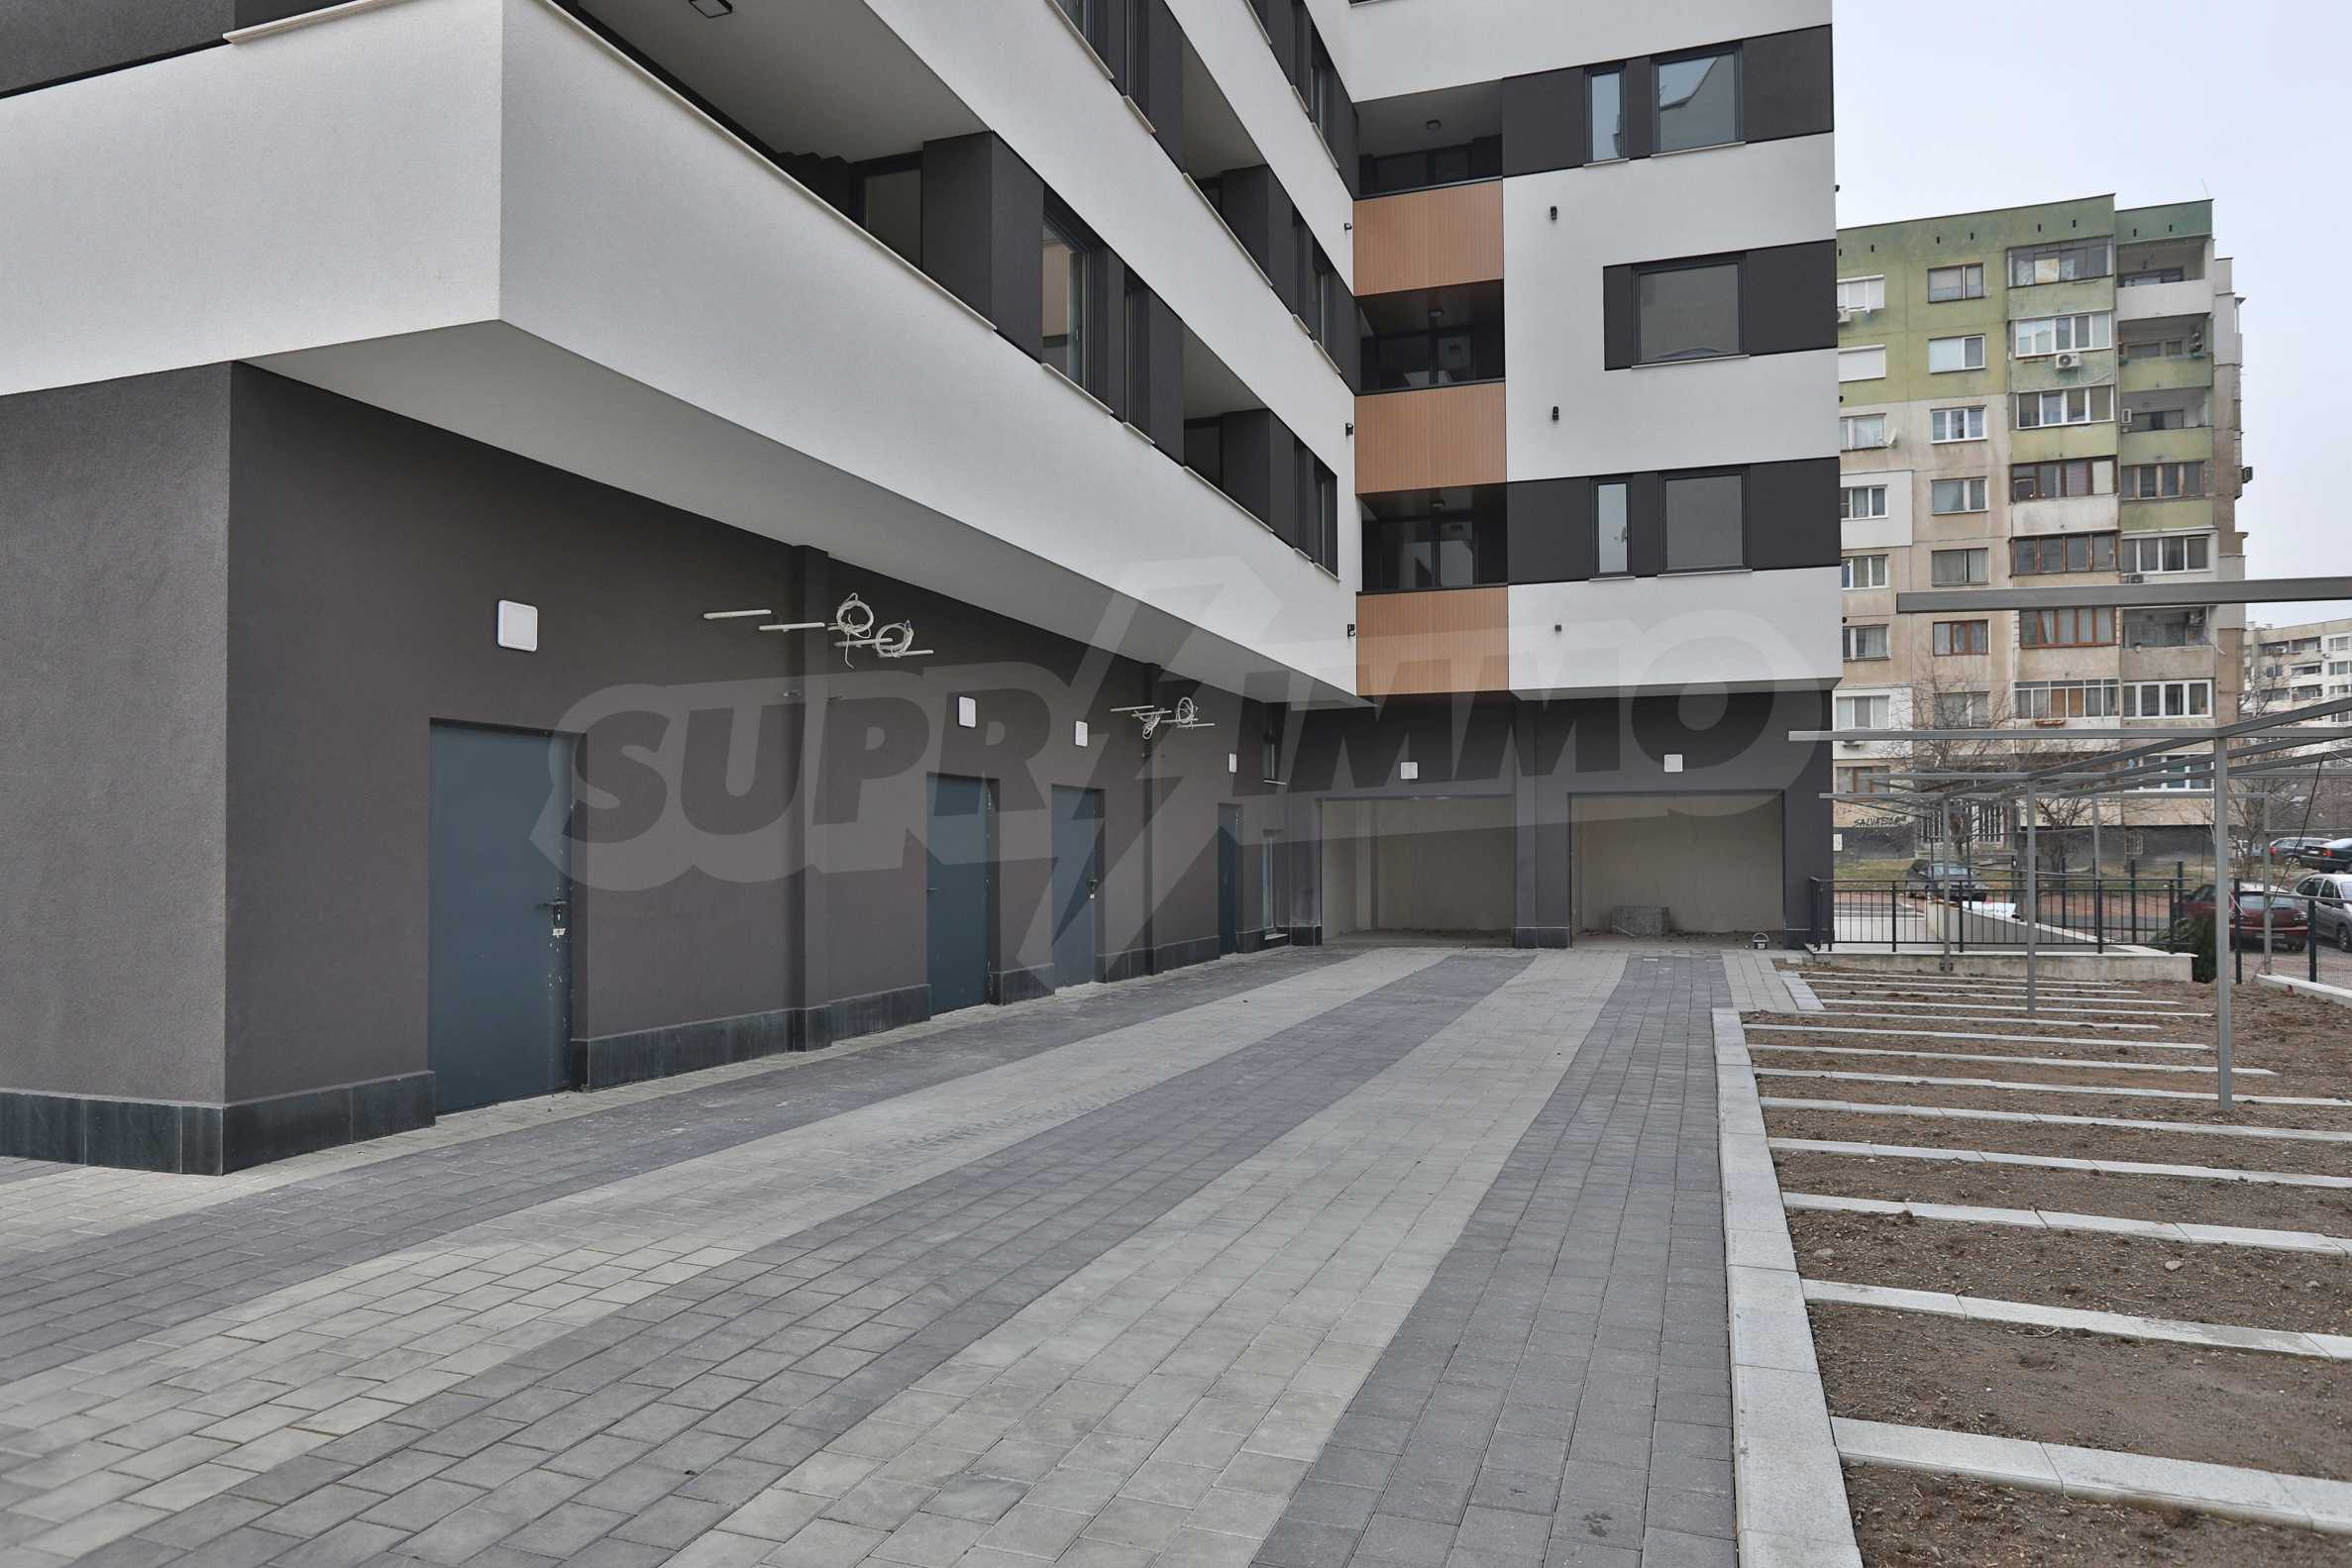 Shops, garages & parking spaces for sale in Comfort - Ovcha Kupel - new building near metro station 14